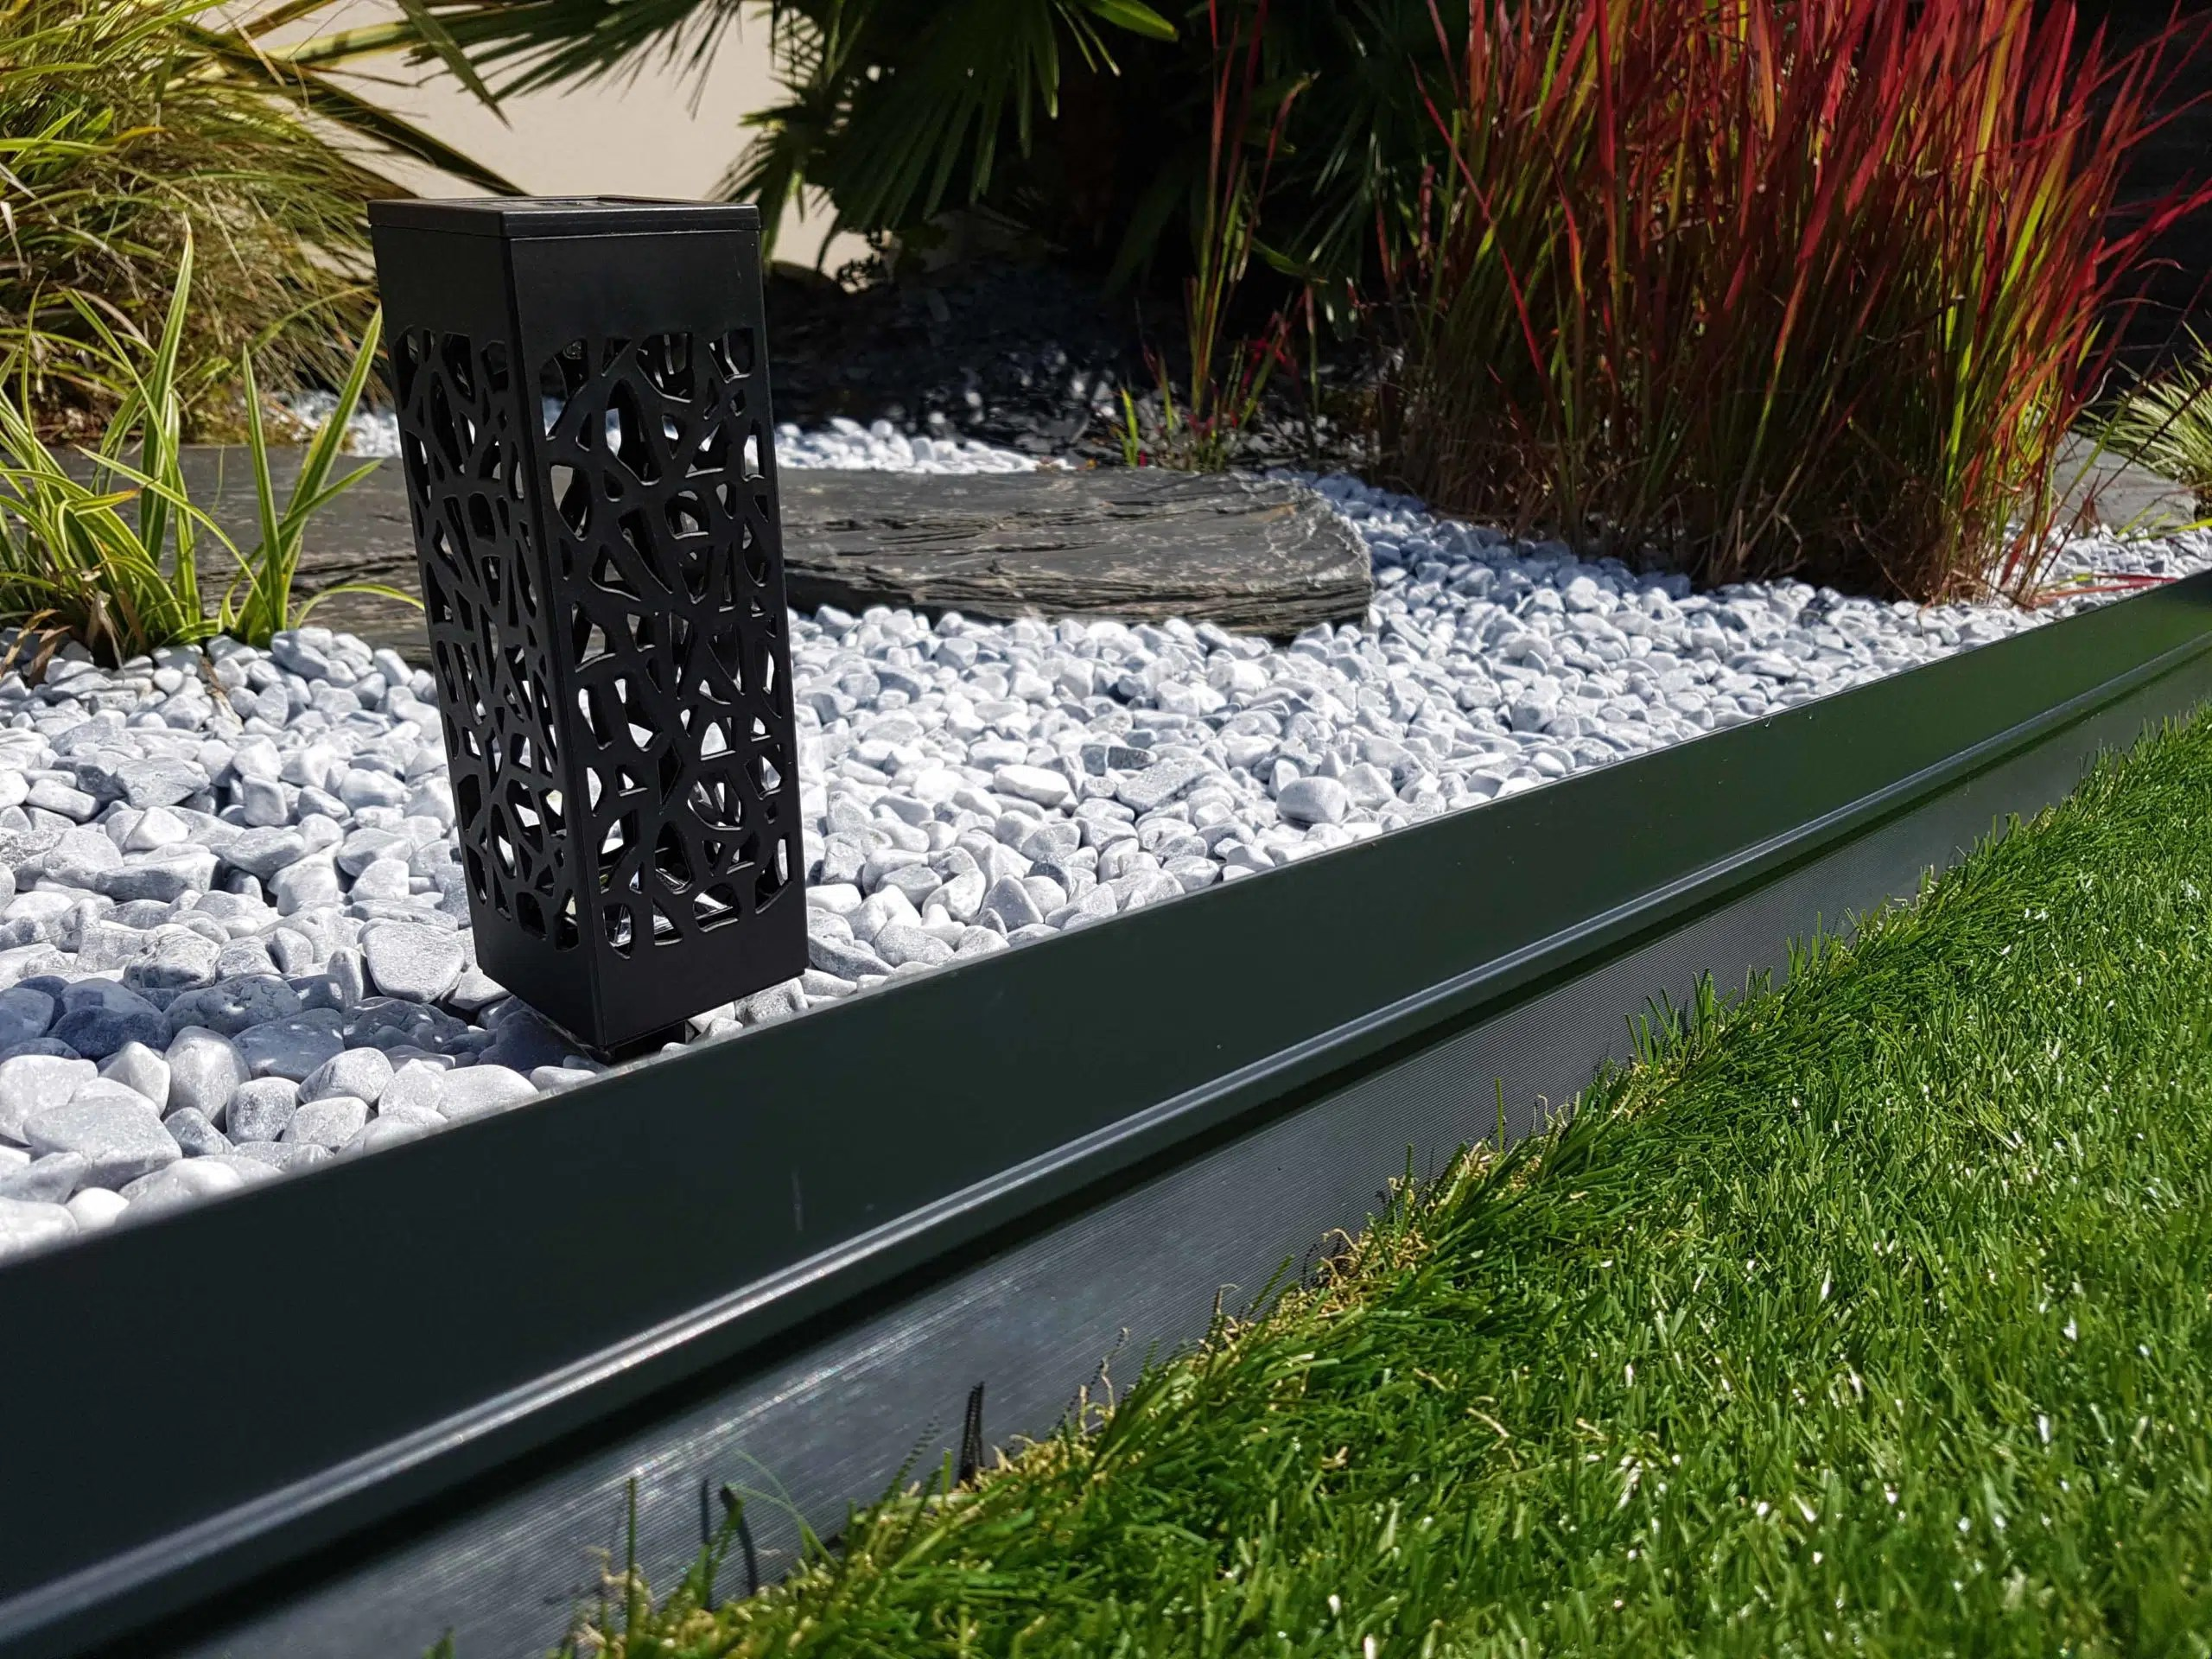 Decoration Bordure Jardin Bordure Bordalu Gris Anthracite Jardivrac Décoration